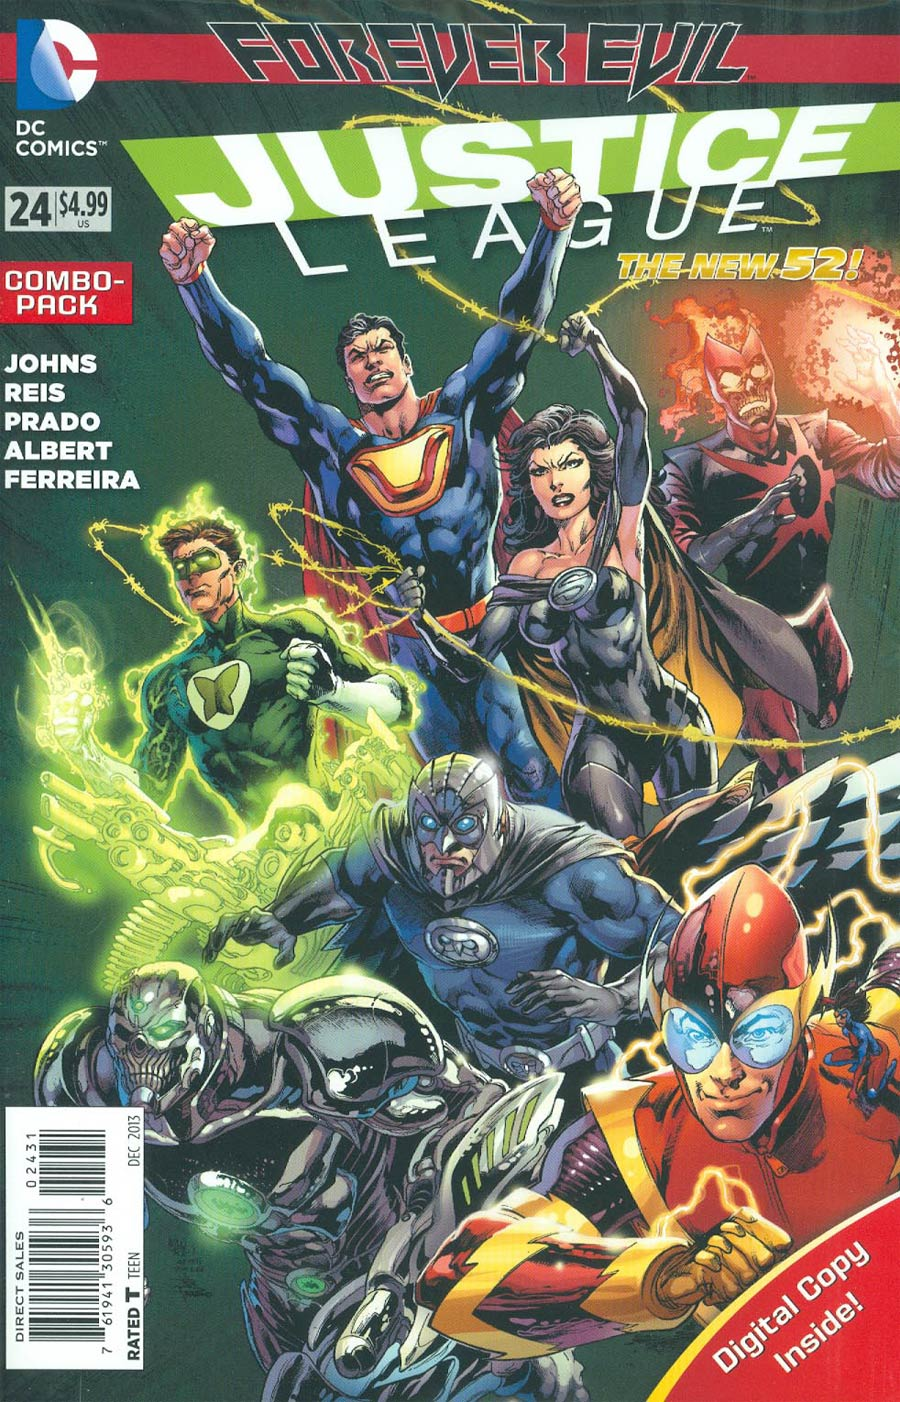 Justice League Vol 2 #24 Cover B Combo Pack With Polybag (Forever Evil Tie-In)